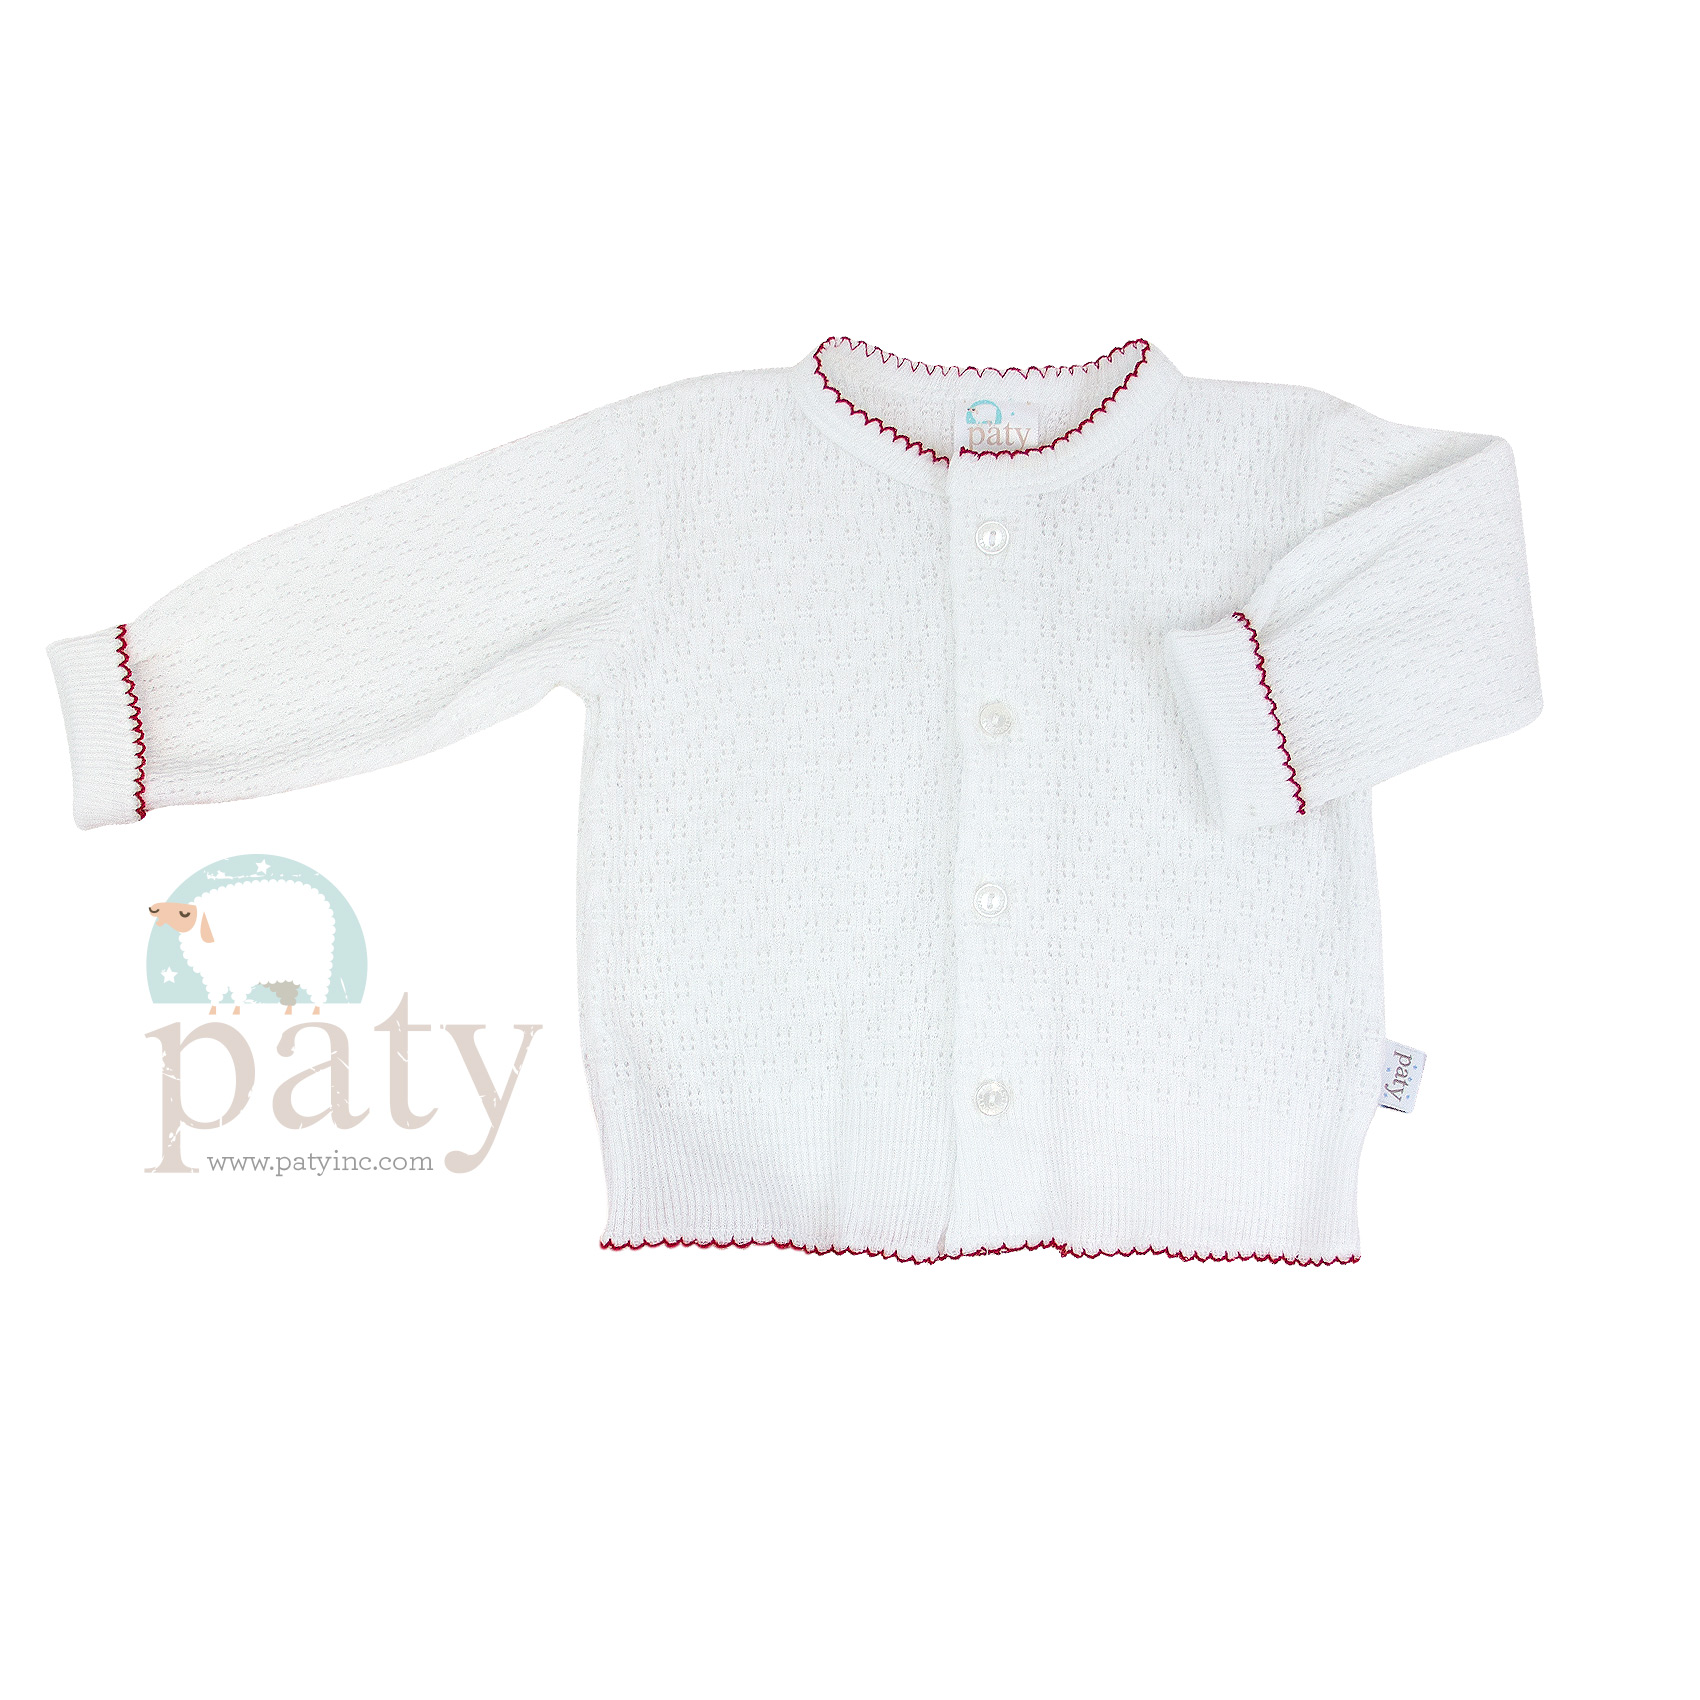 Paty Knit LS Button Up White Cardigan Sweater with Red Trim